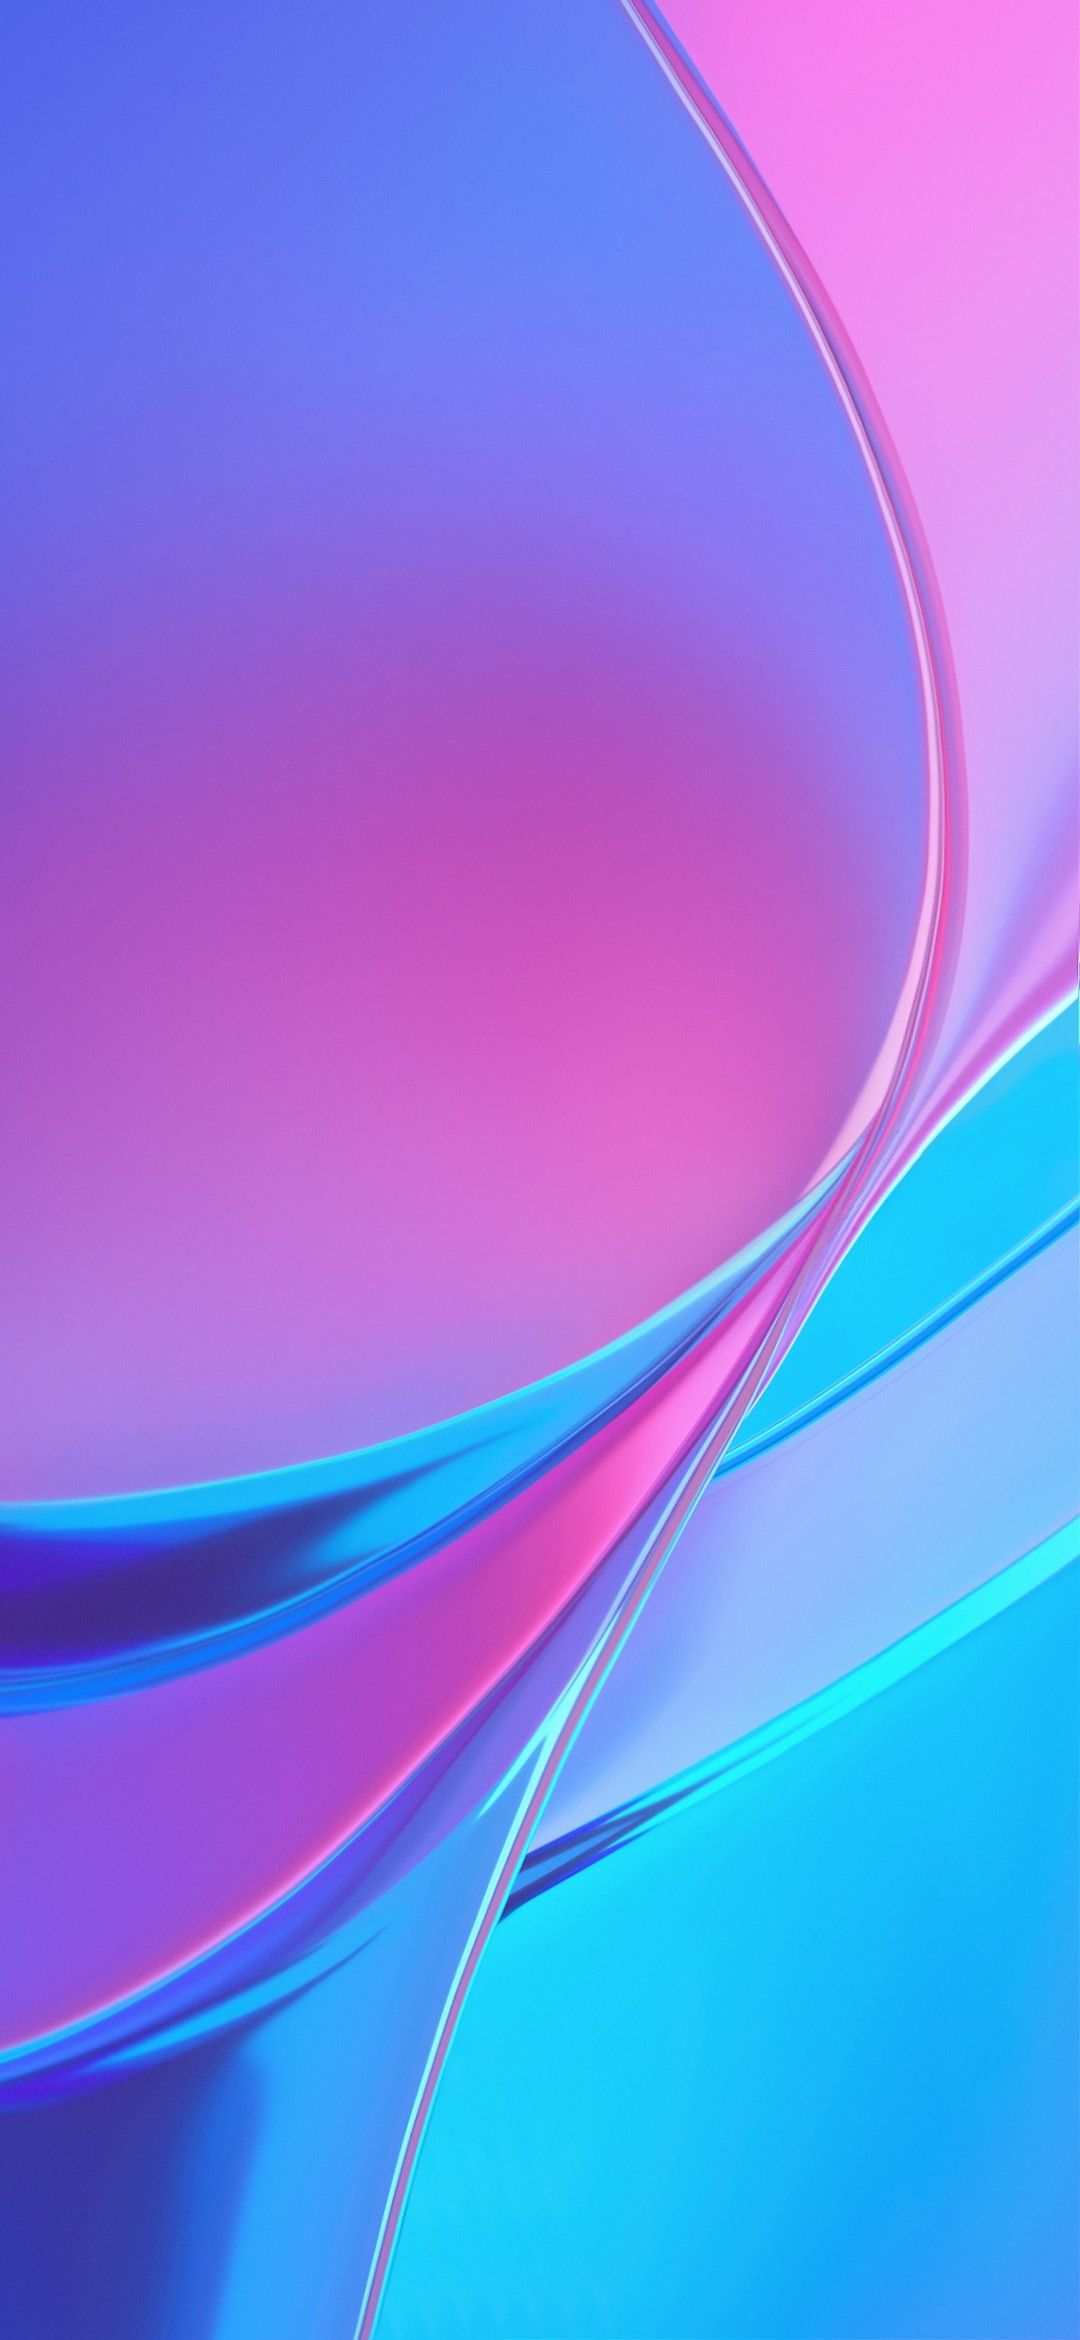 Pin by 柏凱 邱 on color Samsung wallpaper, Xiaomi